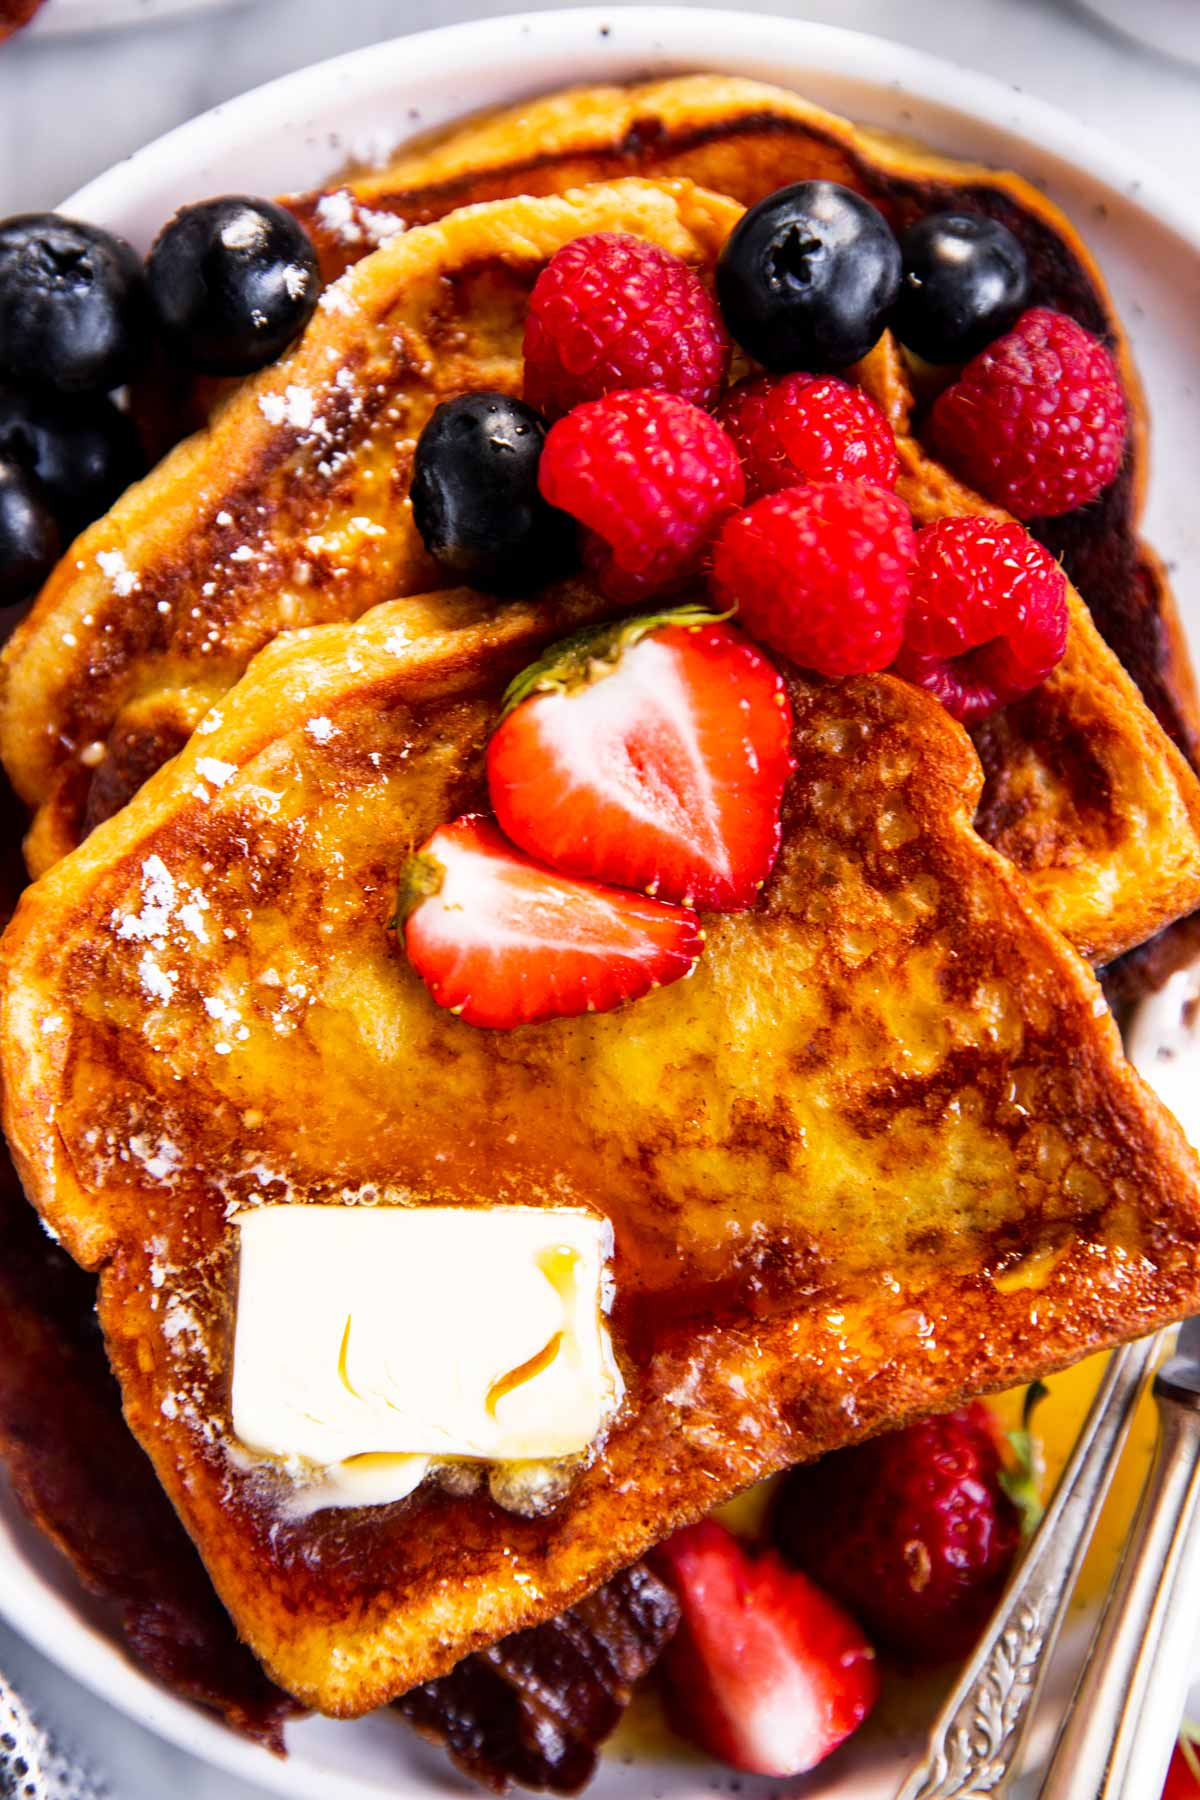 overhead view of slices of French toast garnished with icing sugar, butter and berries